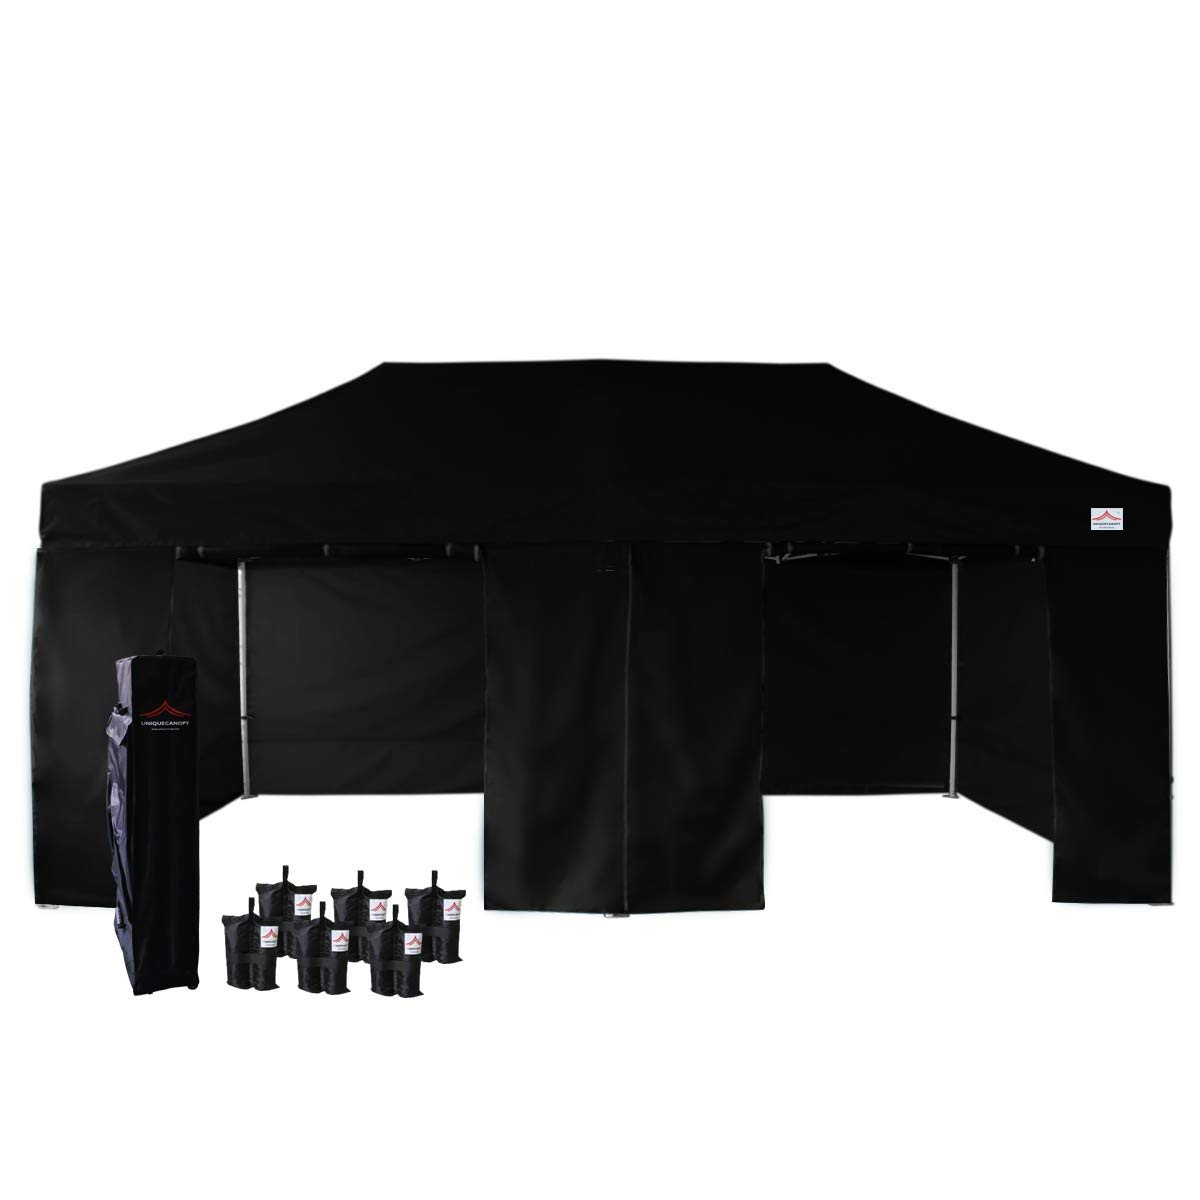 UNIQUECANOPY 500D Enhanced 10x20 Ez Pop up Canopy Portable Folded Commercial Canopy Car Shelter Wedding Party Show Tent with 4 Zippered Side Walls and Wheeled Carrying Bag Black